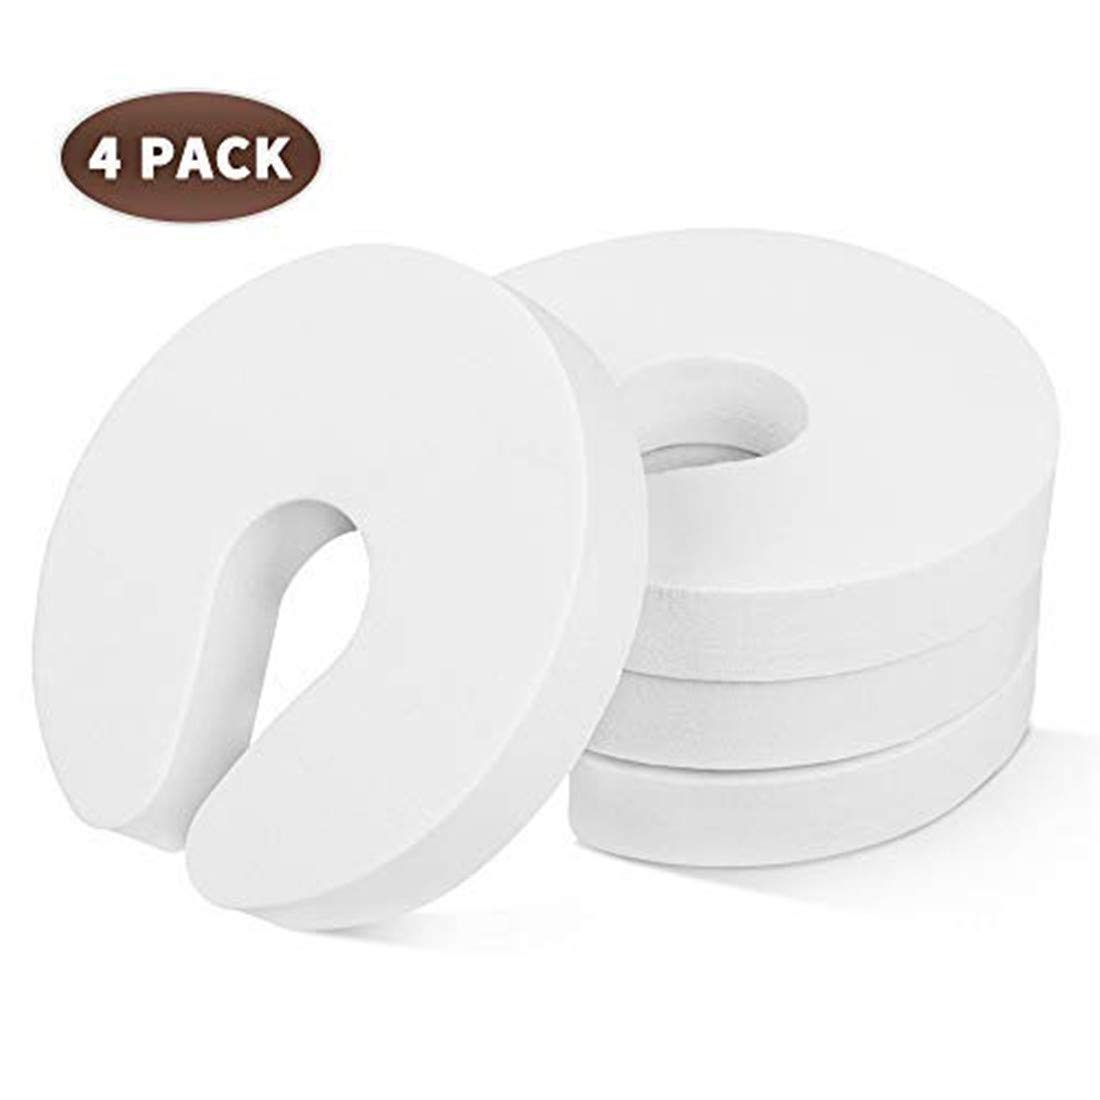 and Child or Pet from Getting Locked in Room Finger Pinch Guard Baby Proofing Doors Made Easy with Soft Yet Durable Foam Door Stopper 4 Pack Slamming Doors Prevents Finger Pinch Injuries